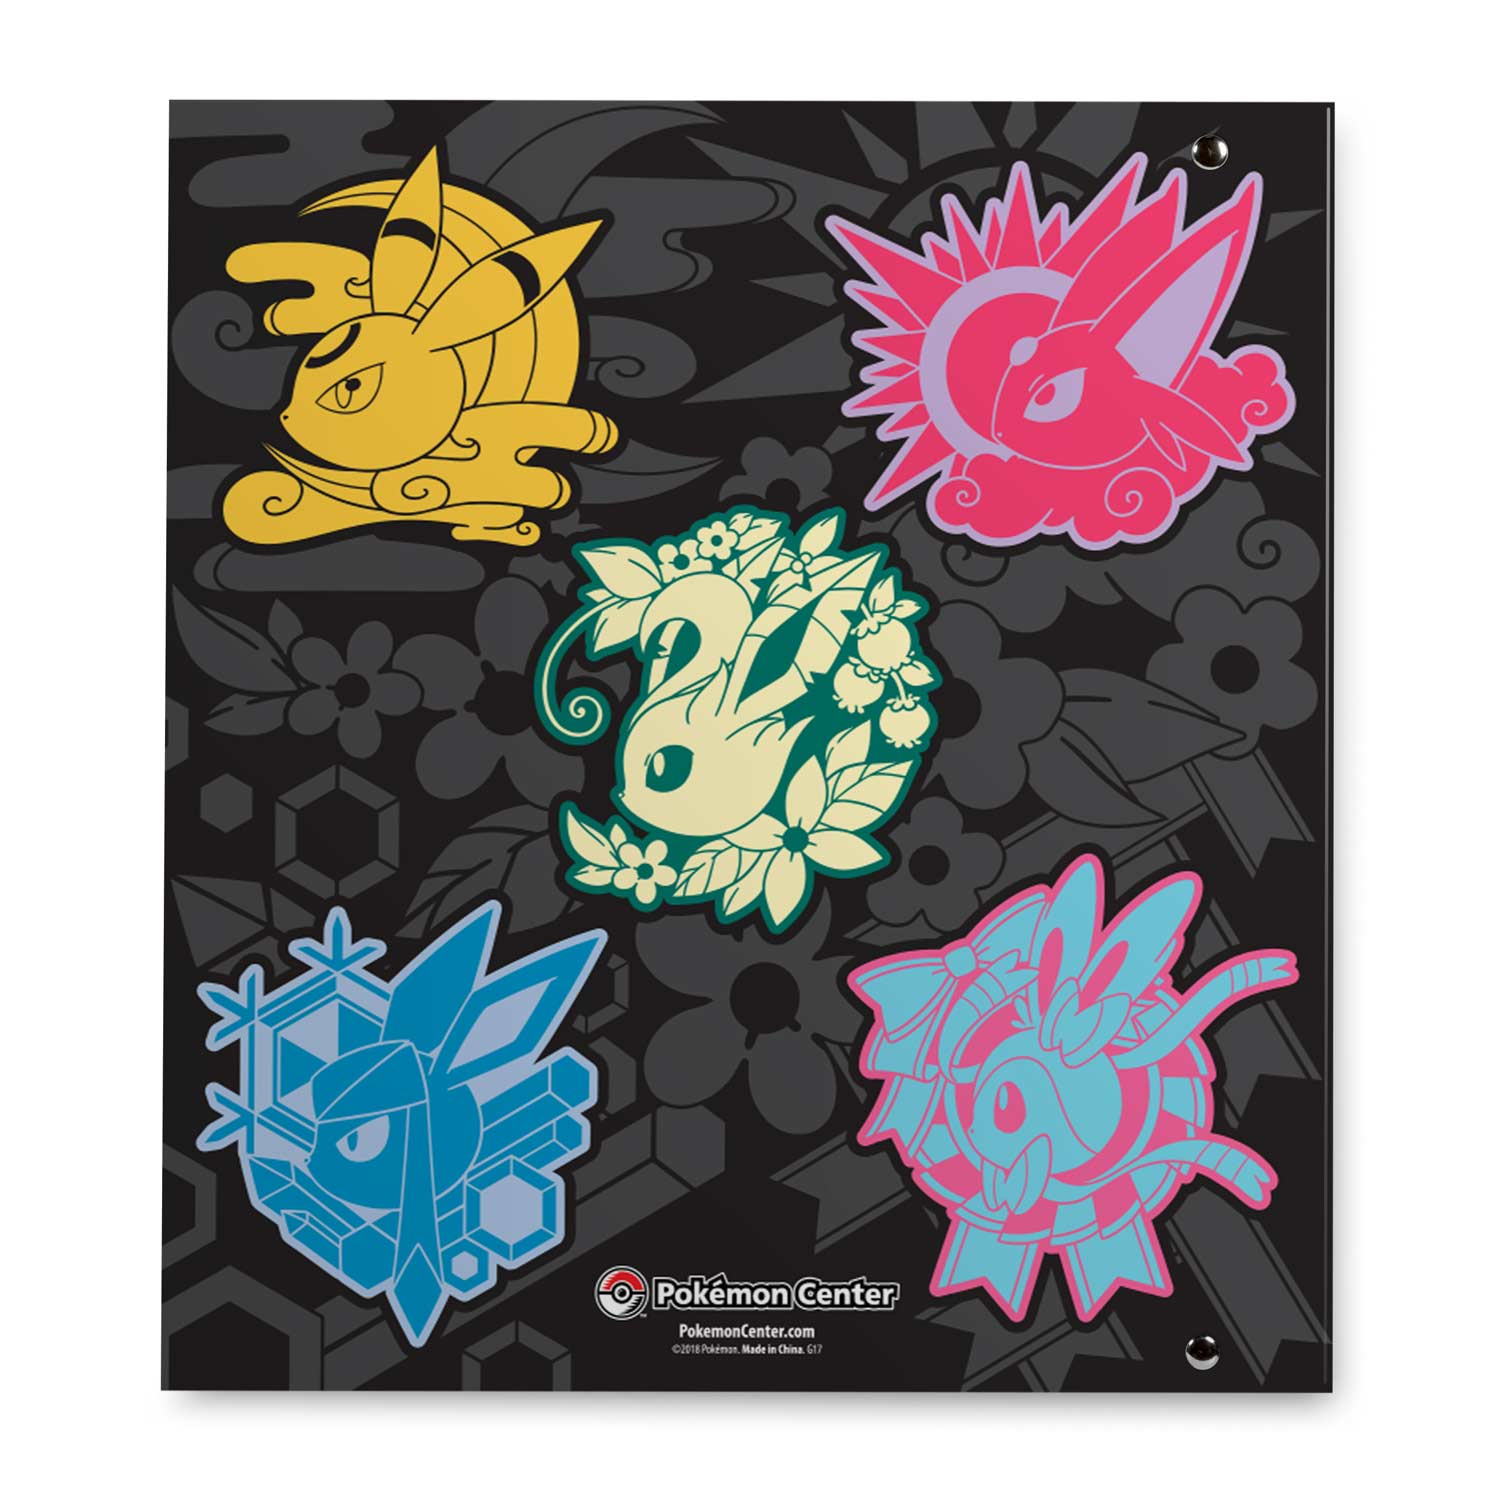 64e8bb20 ... Image for Faces of Eevee D-Ring Binder - 1 In. from Pokemon Center ...